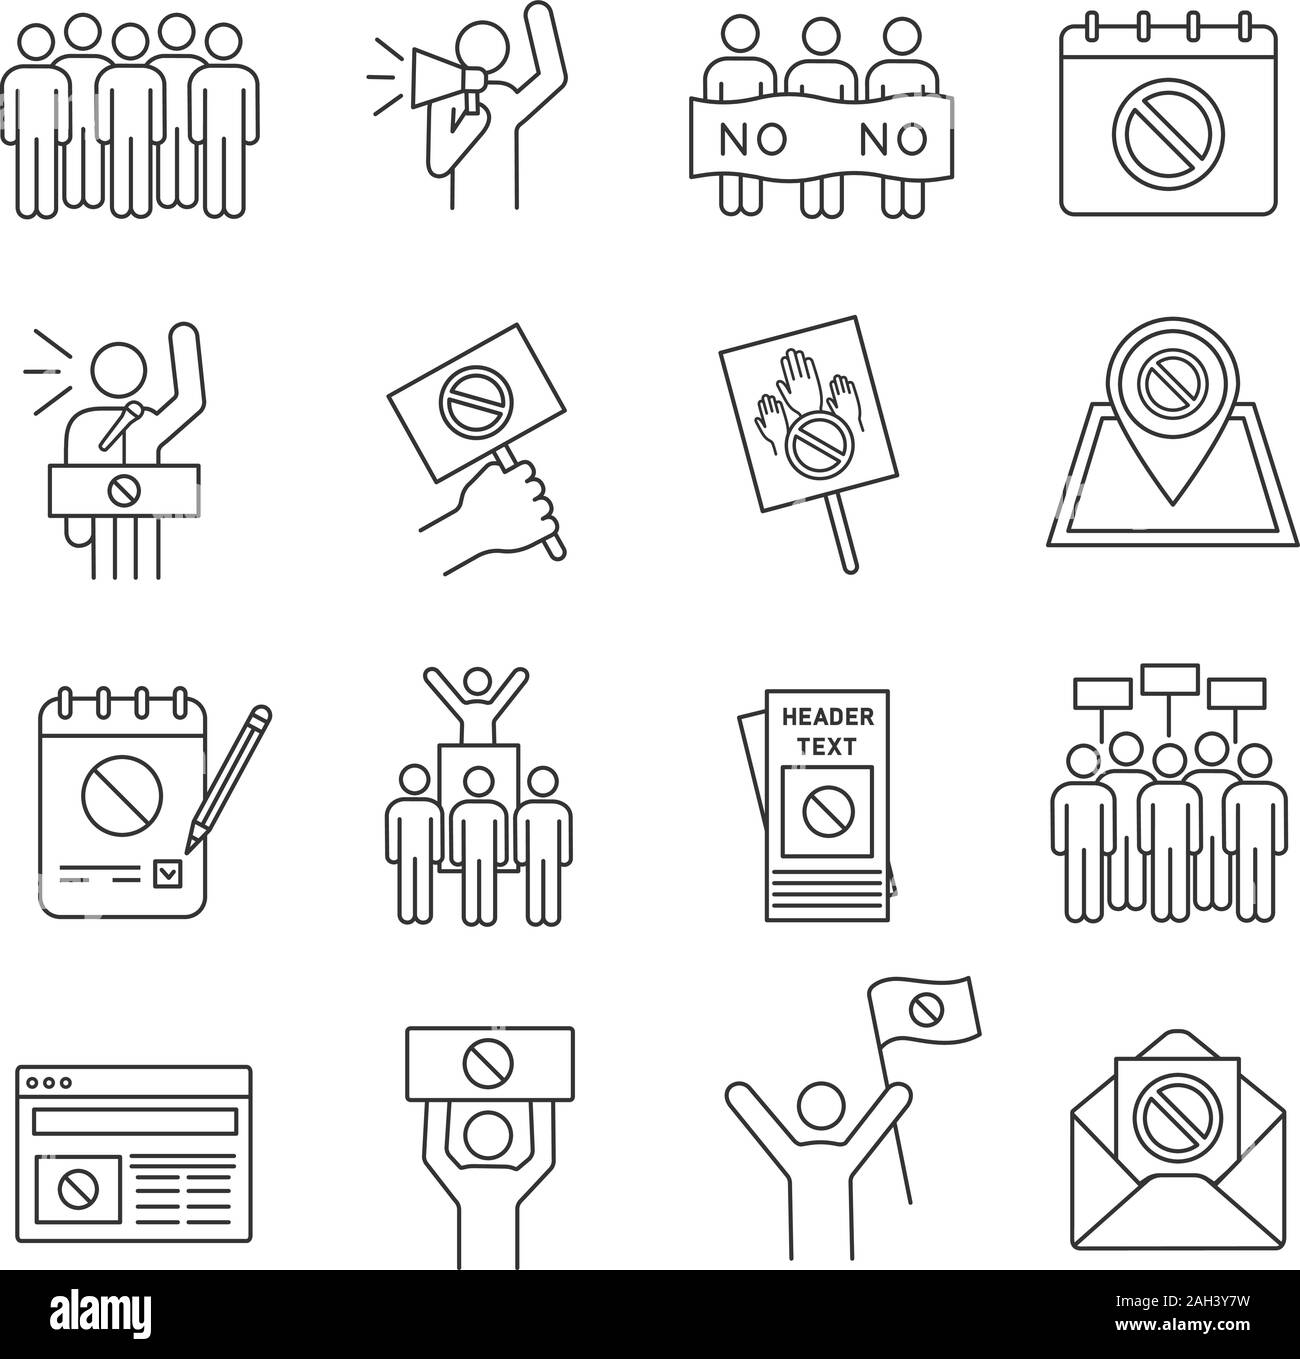 Protest action linear icons set. Political behaviour. Social and political movements. Democracy, rights protection. Thin line contour symbols. Isolate Stock Vector